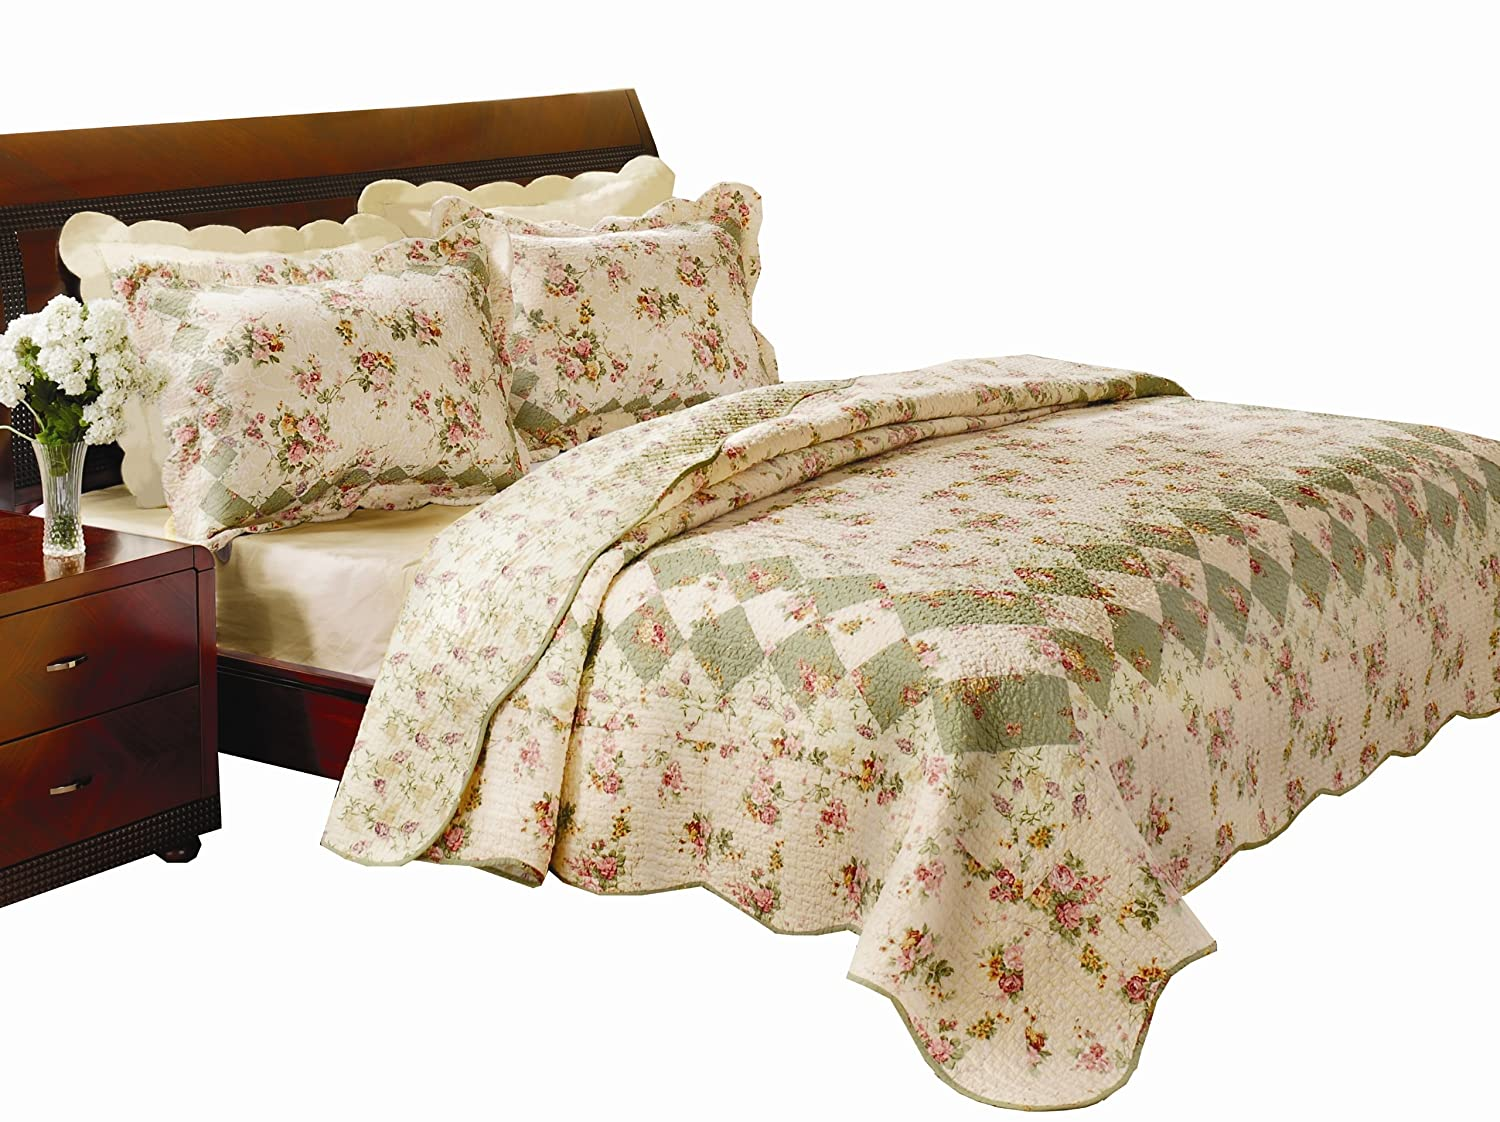 amazoncom greenland home bliss fullqueen quilt set home  kitchen -